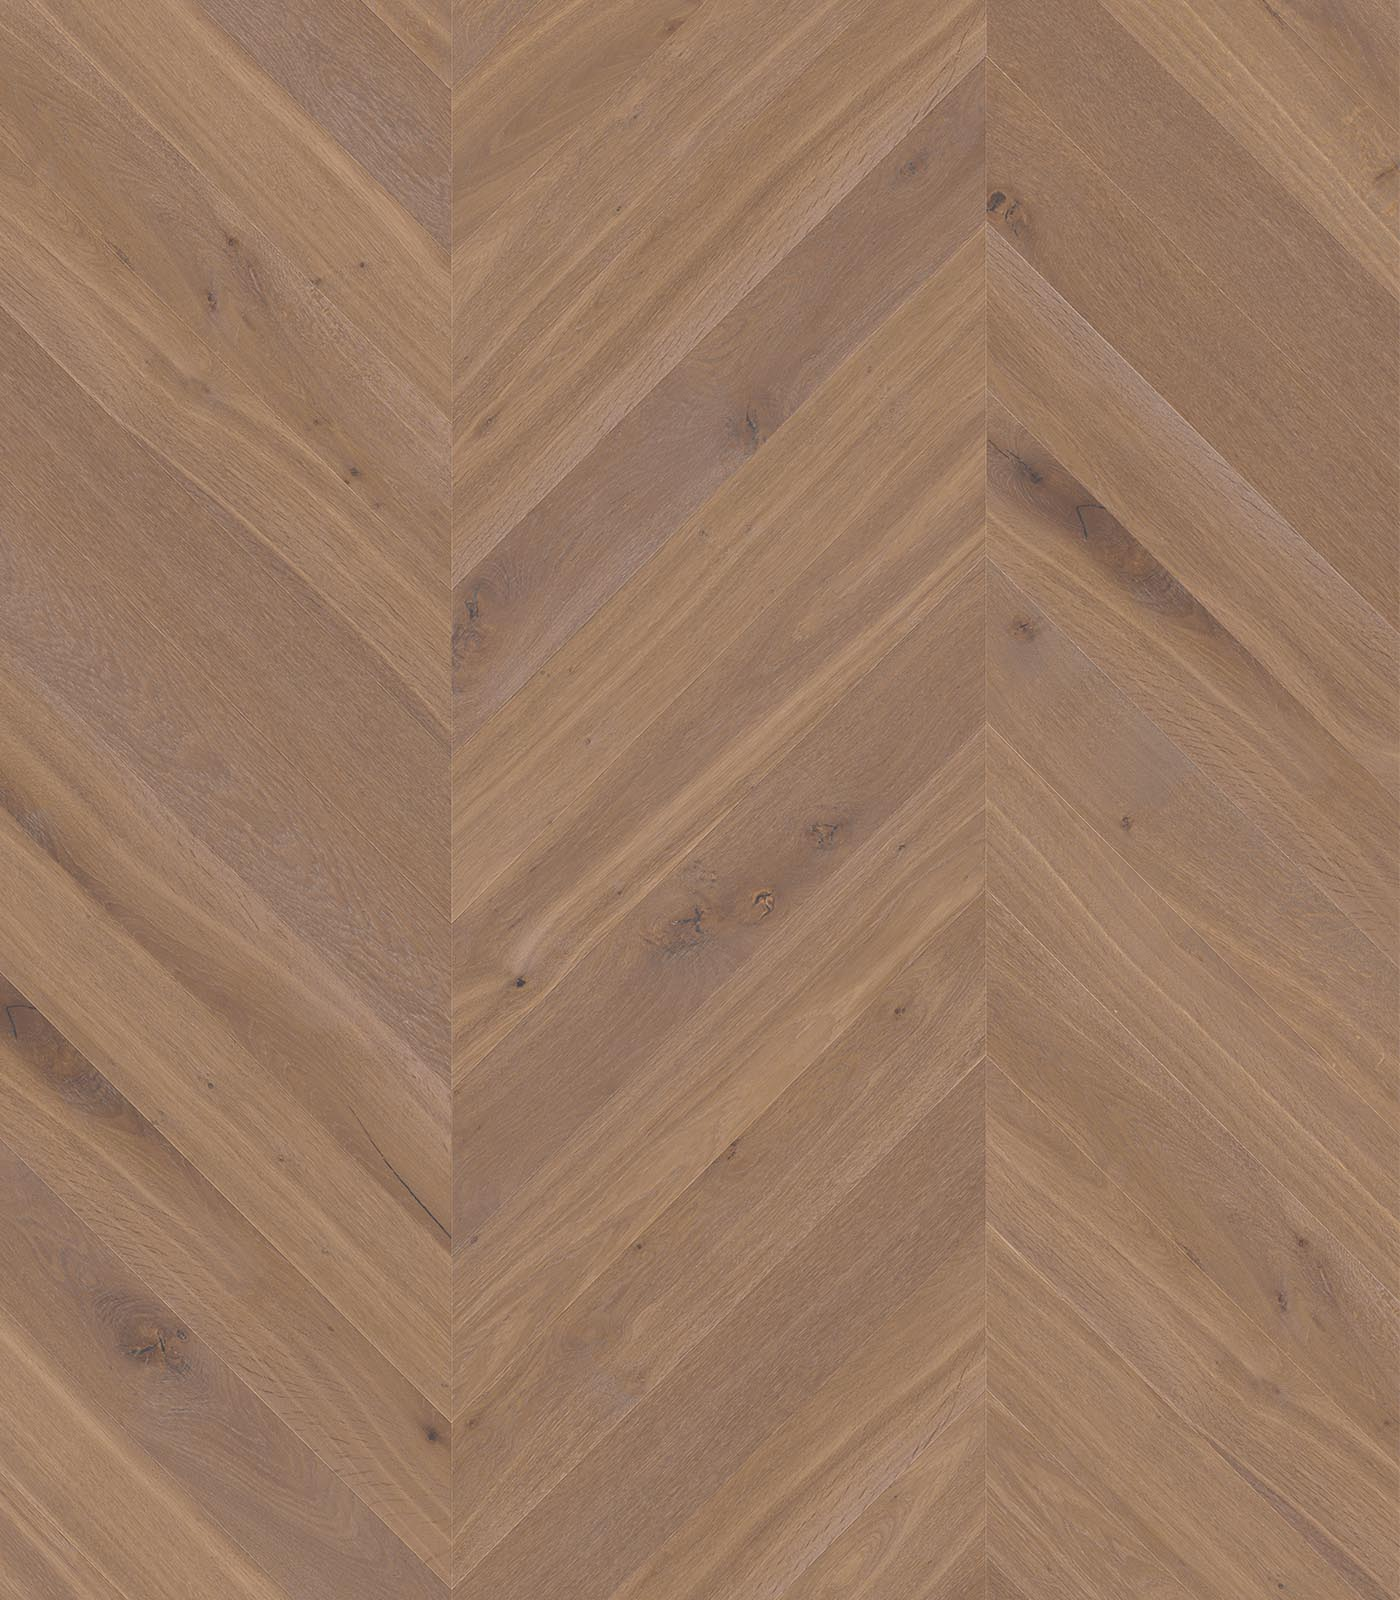 Bairritz-European Chevron Oak floors-Fashion collection-flat